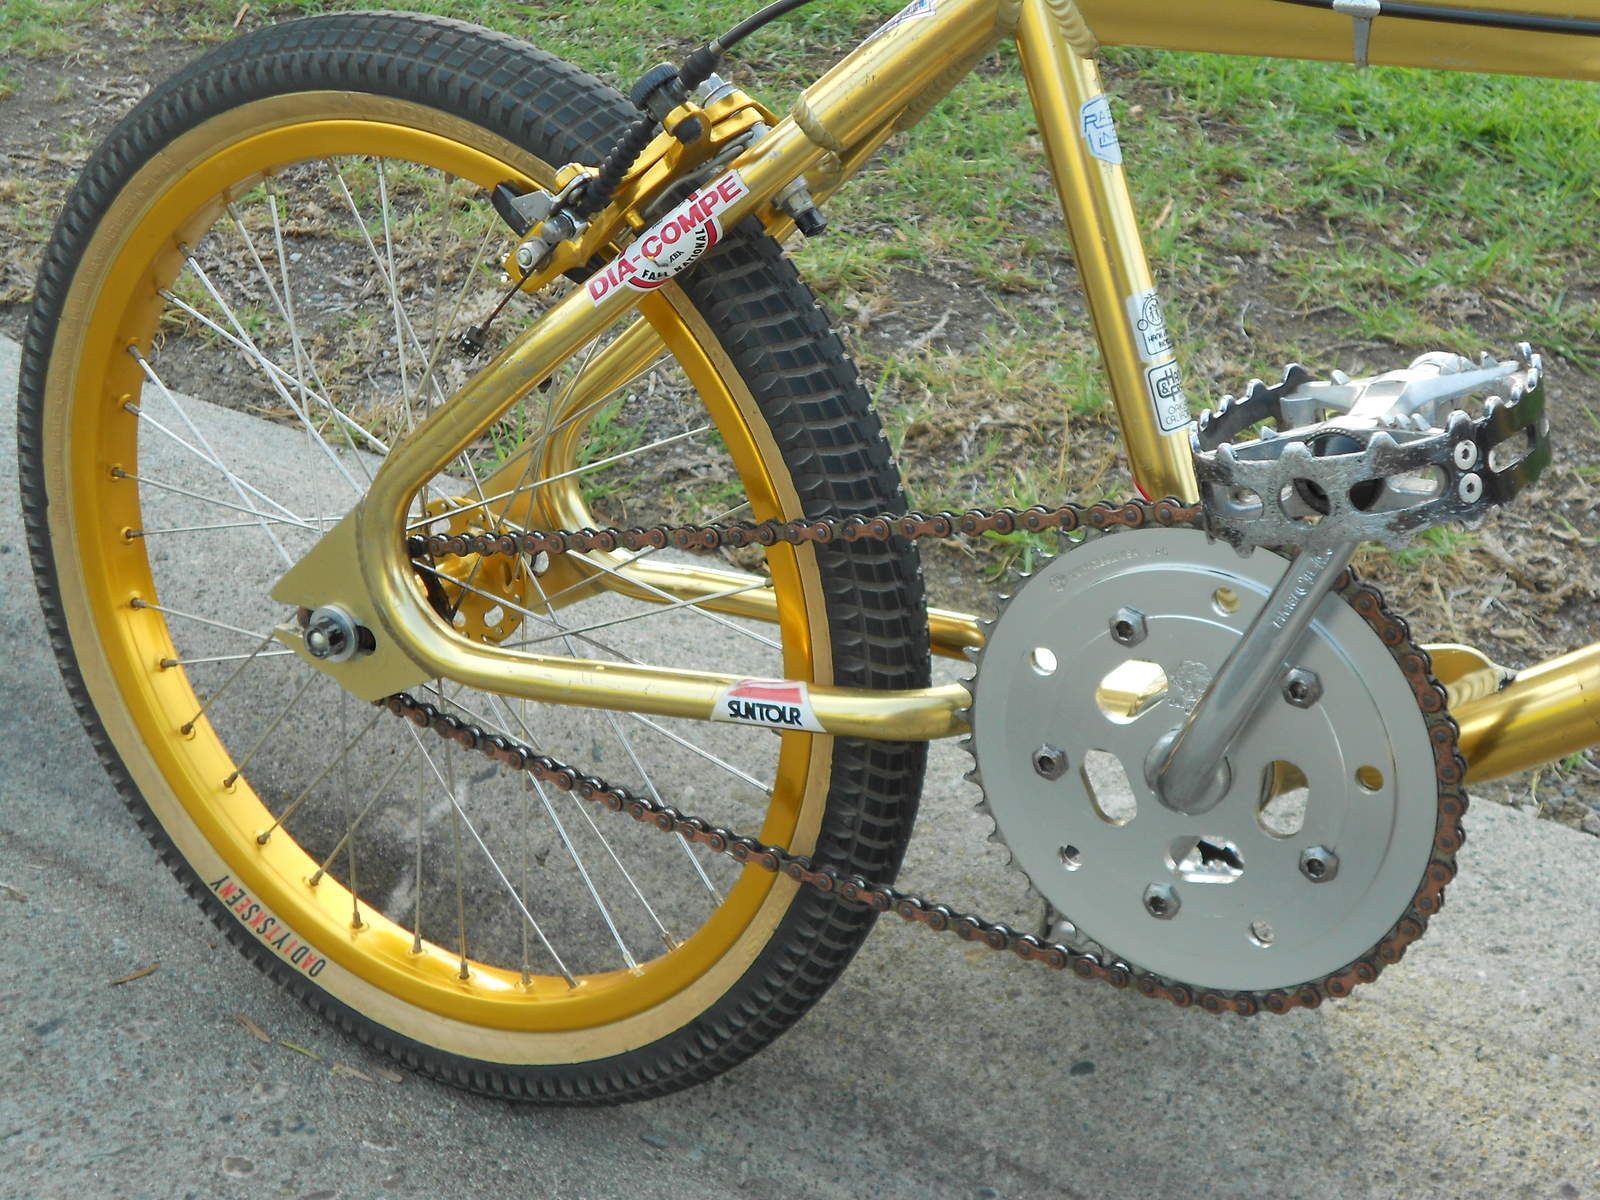 http://uploads.bmxmuseum.com/user-images/42228/ri-9-25-2018-0035bb2771fdc.jpg